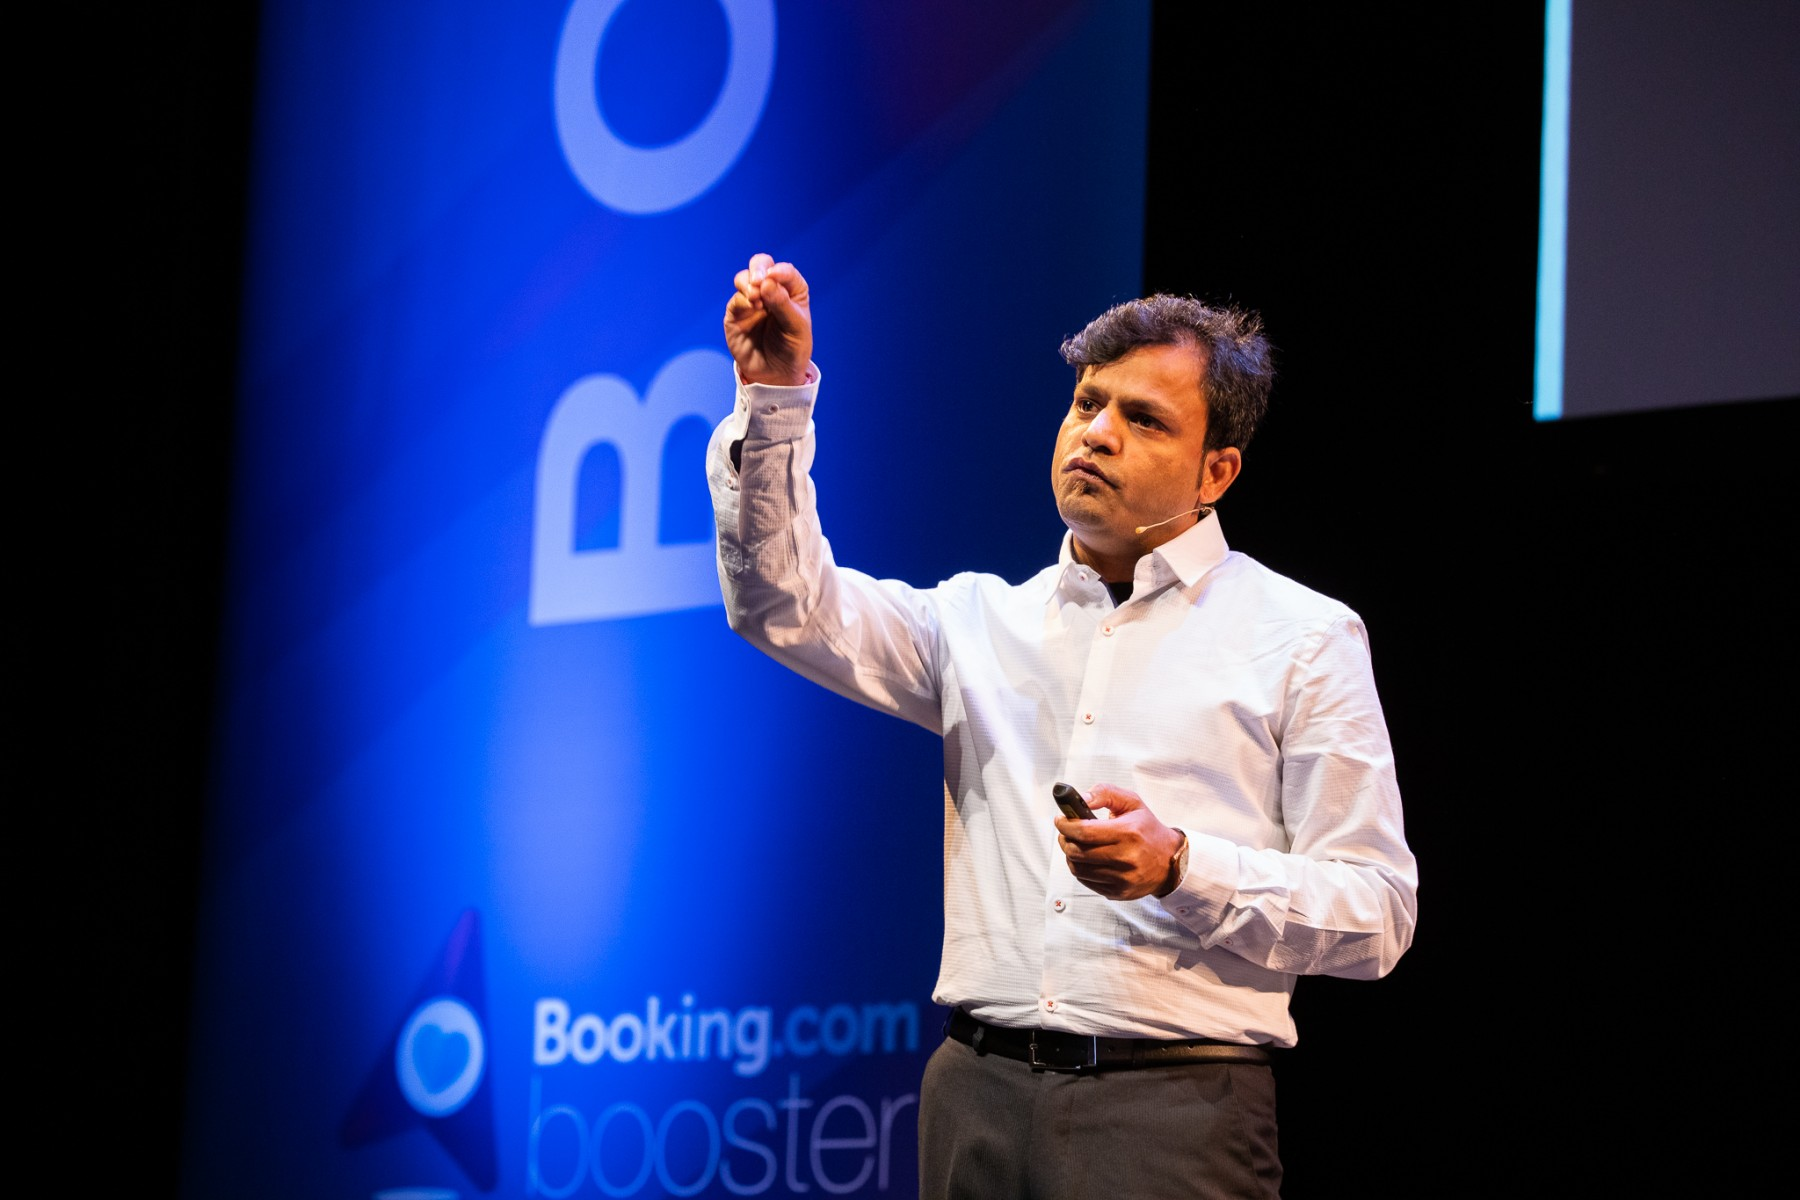 NotOnMap Pitching at 2019 Booking Booster ©FlorisHeuer